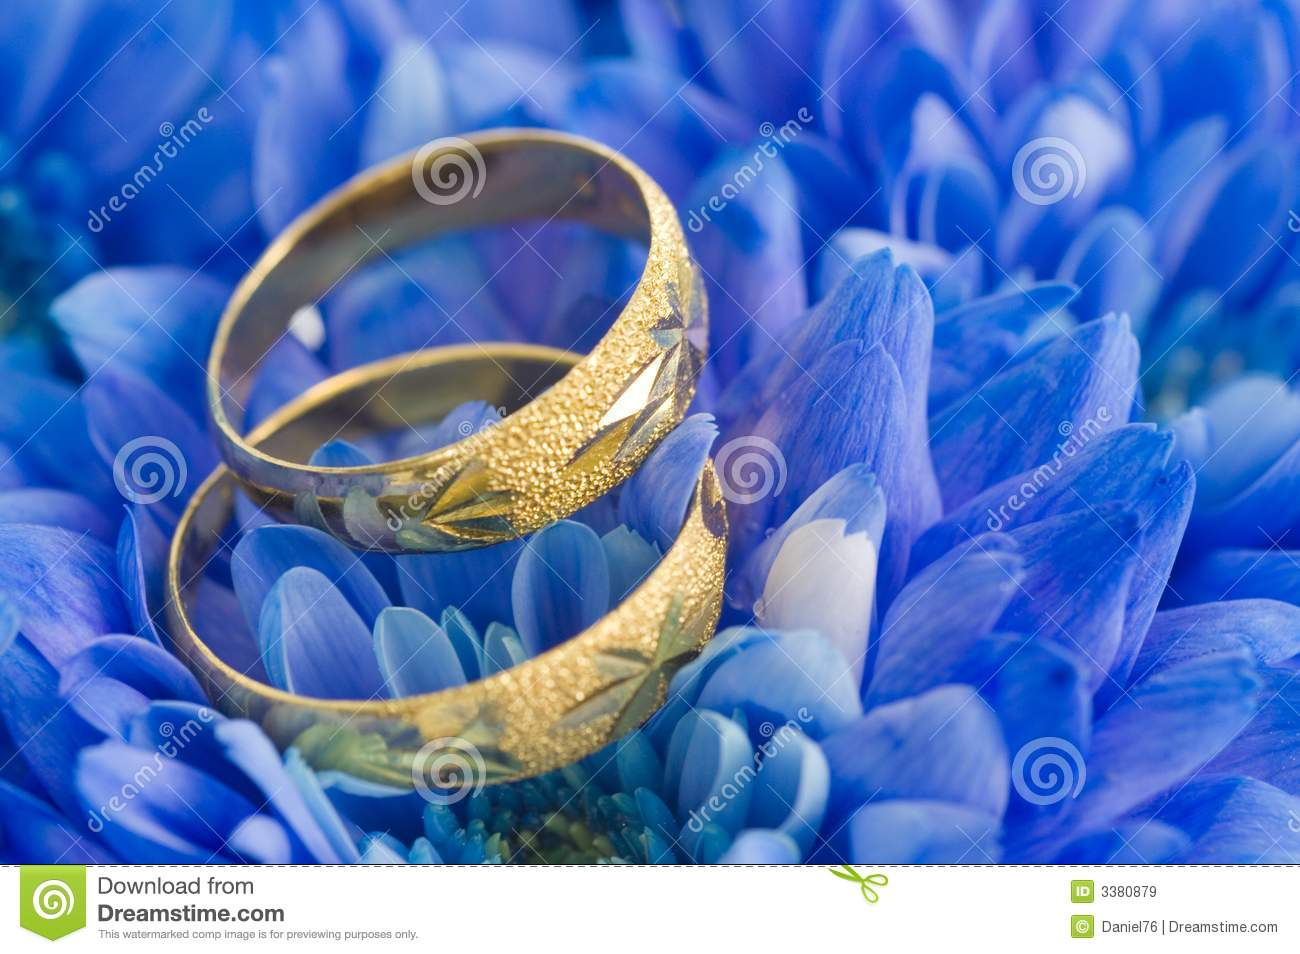 Beautiful Blue Flowers Royalty Free Stock Images  Image: 3380879